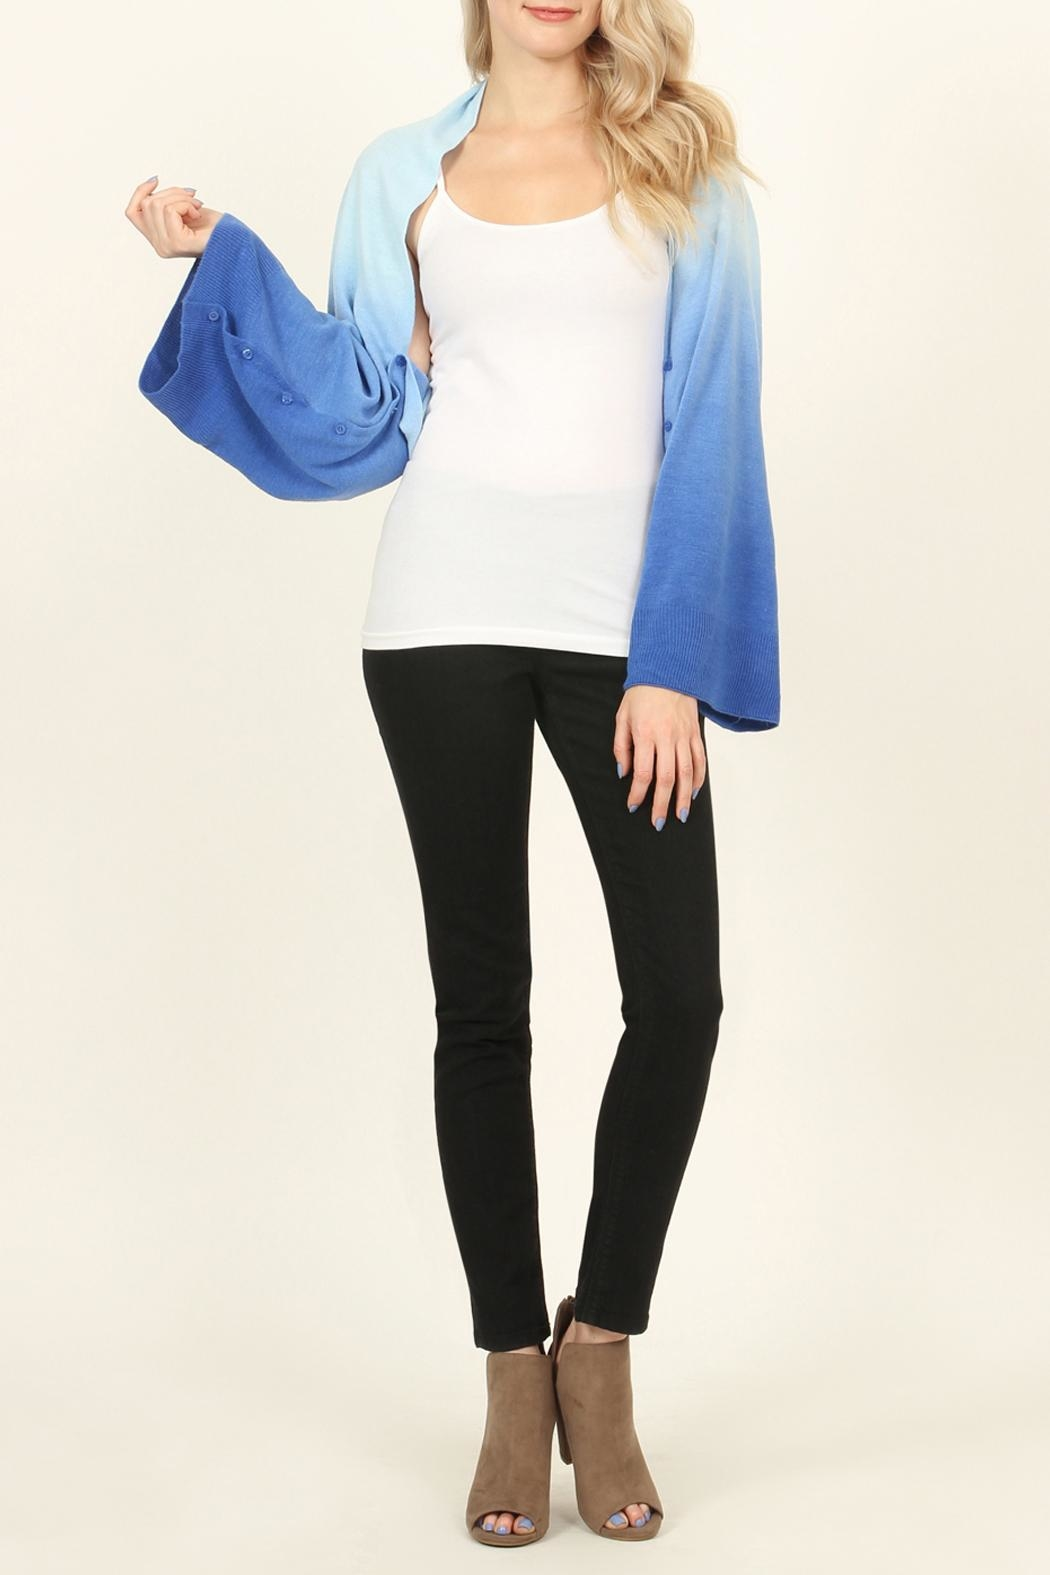 Riah Fashion Soft Ombré Button Cardigan - Side Cropped Image